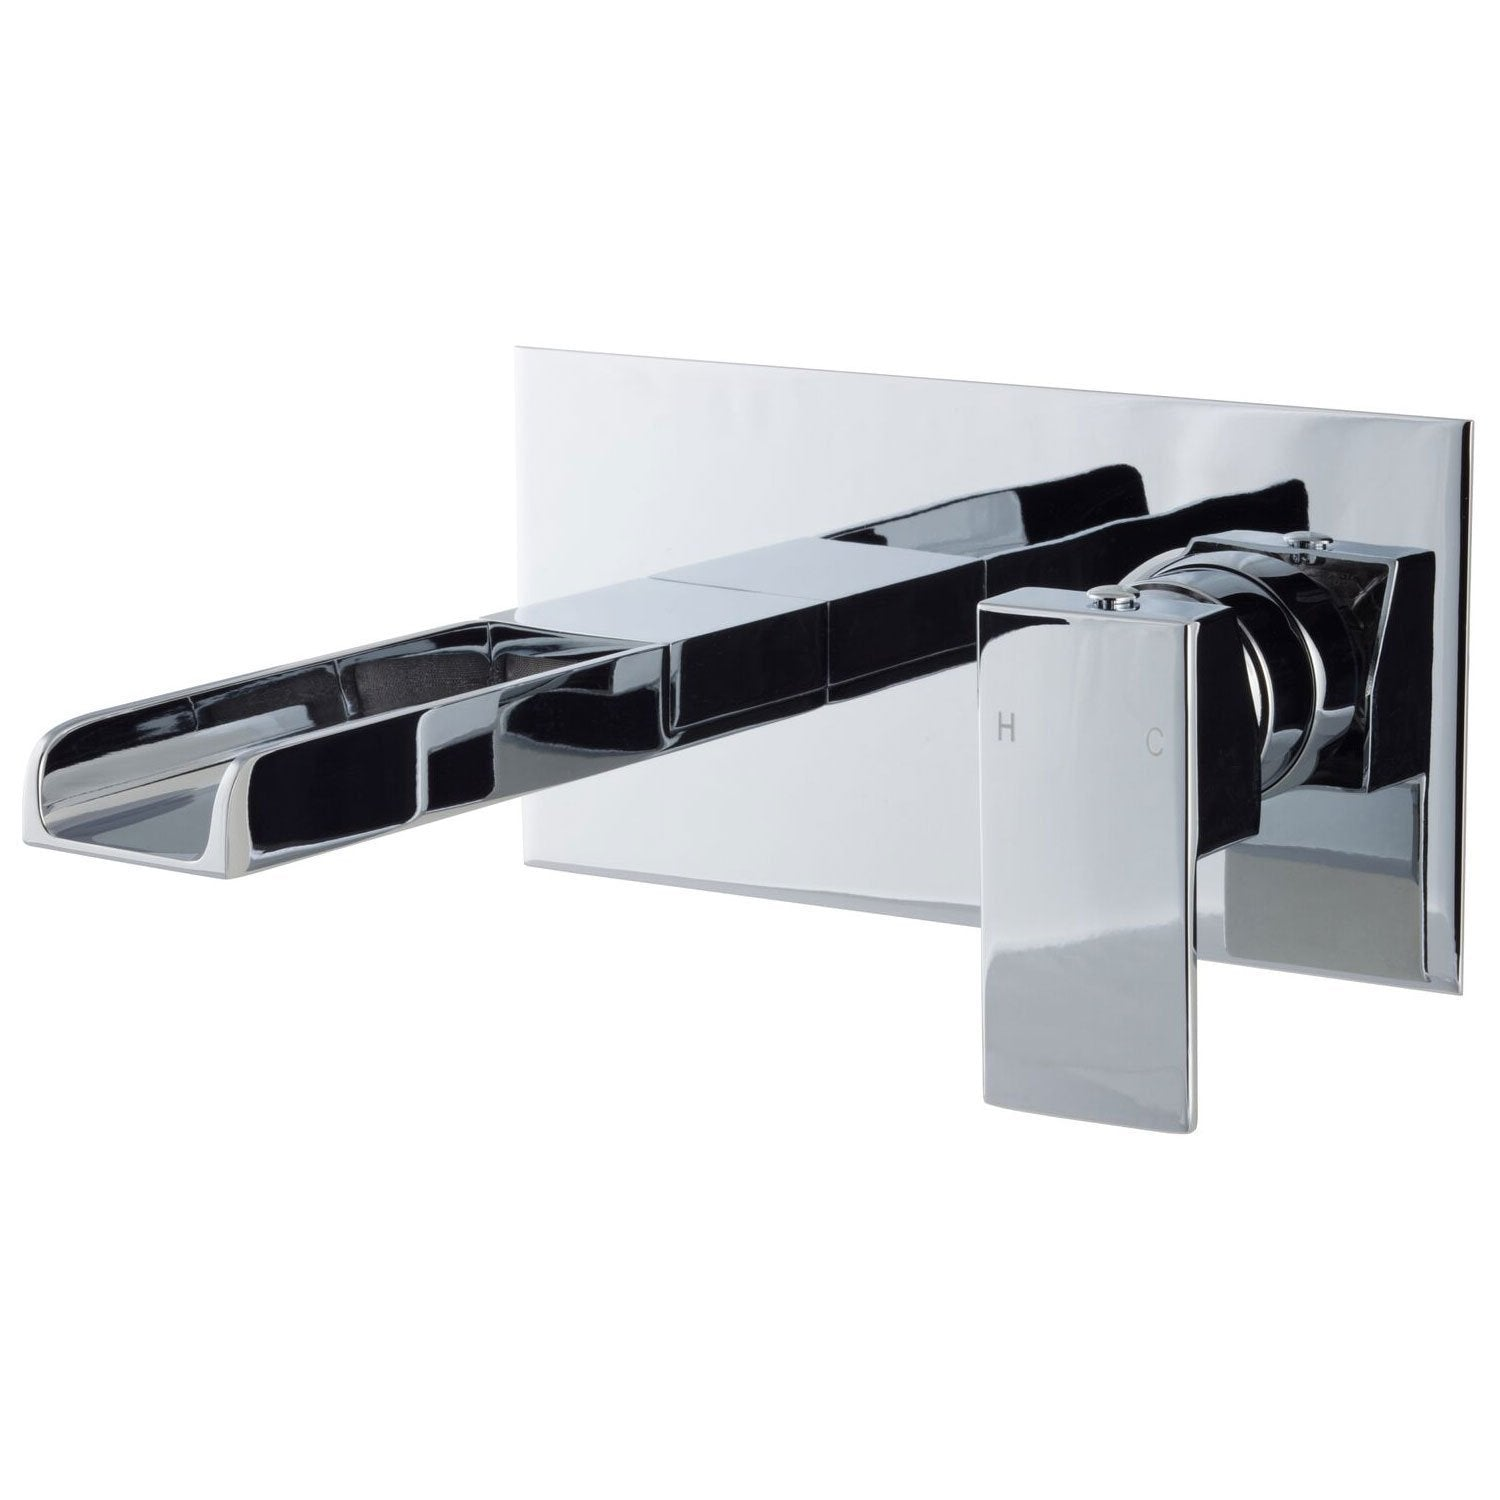 Cassellie Dunk Wall Mounted Basin Mixer Tap - Chrome